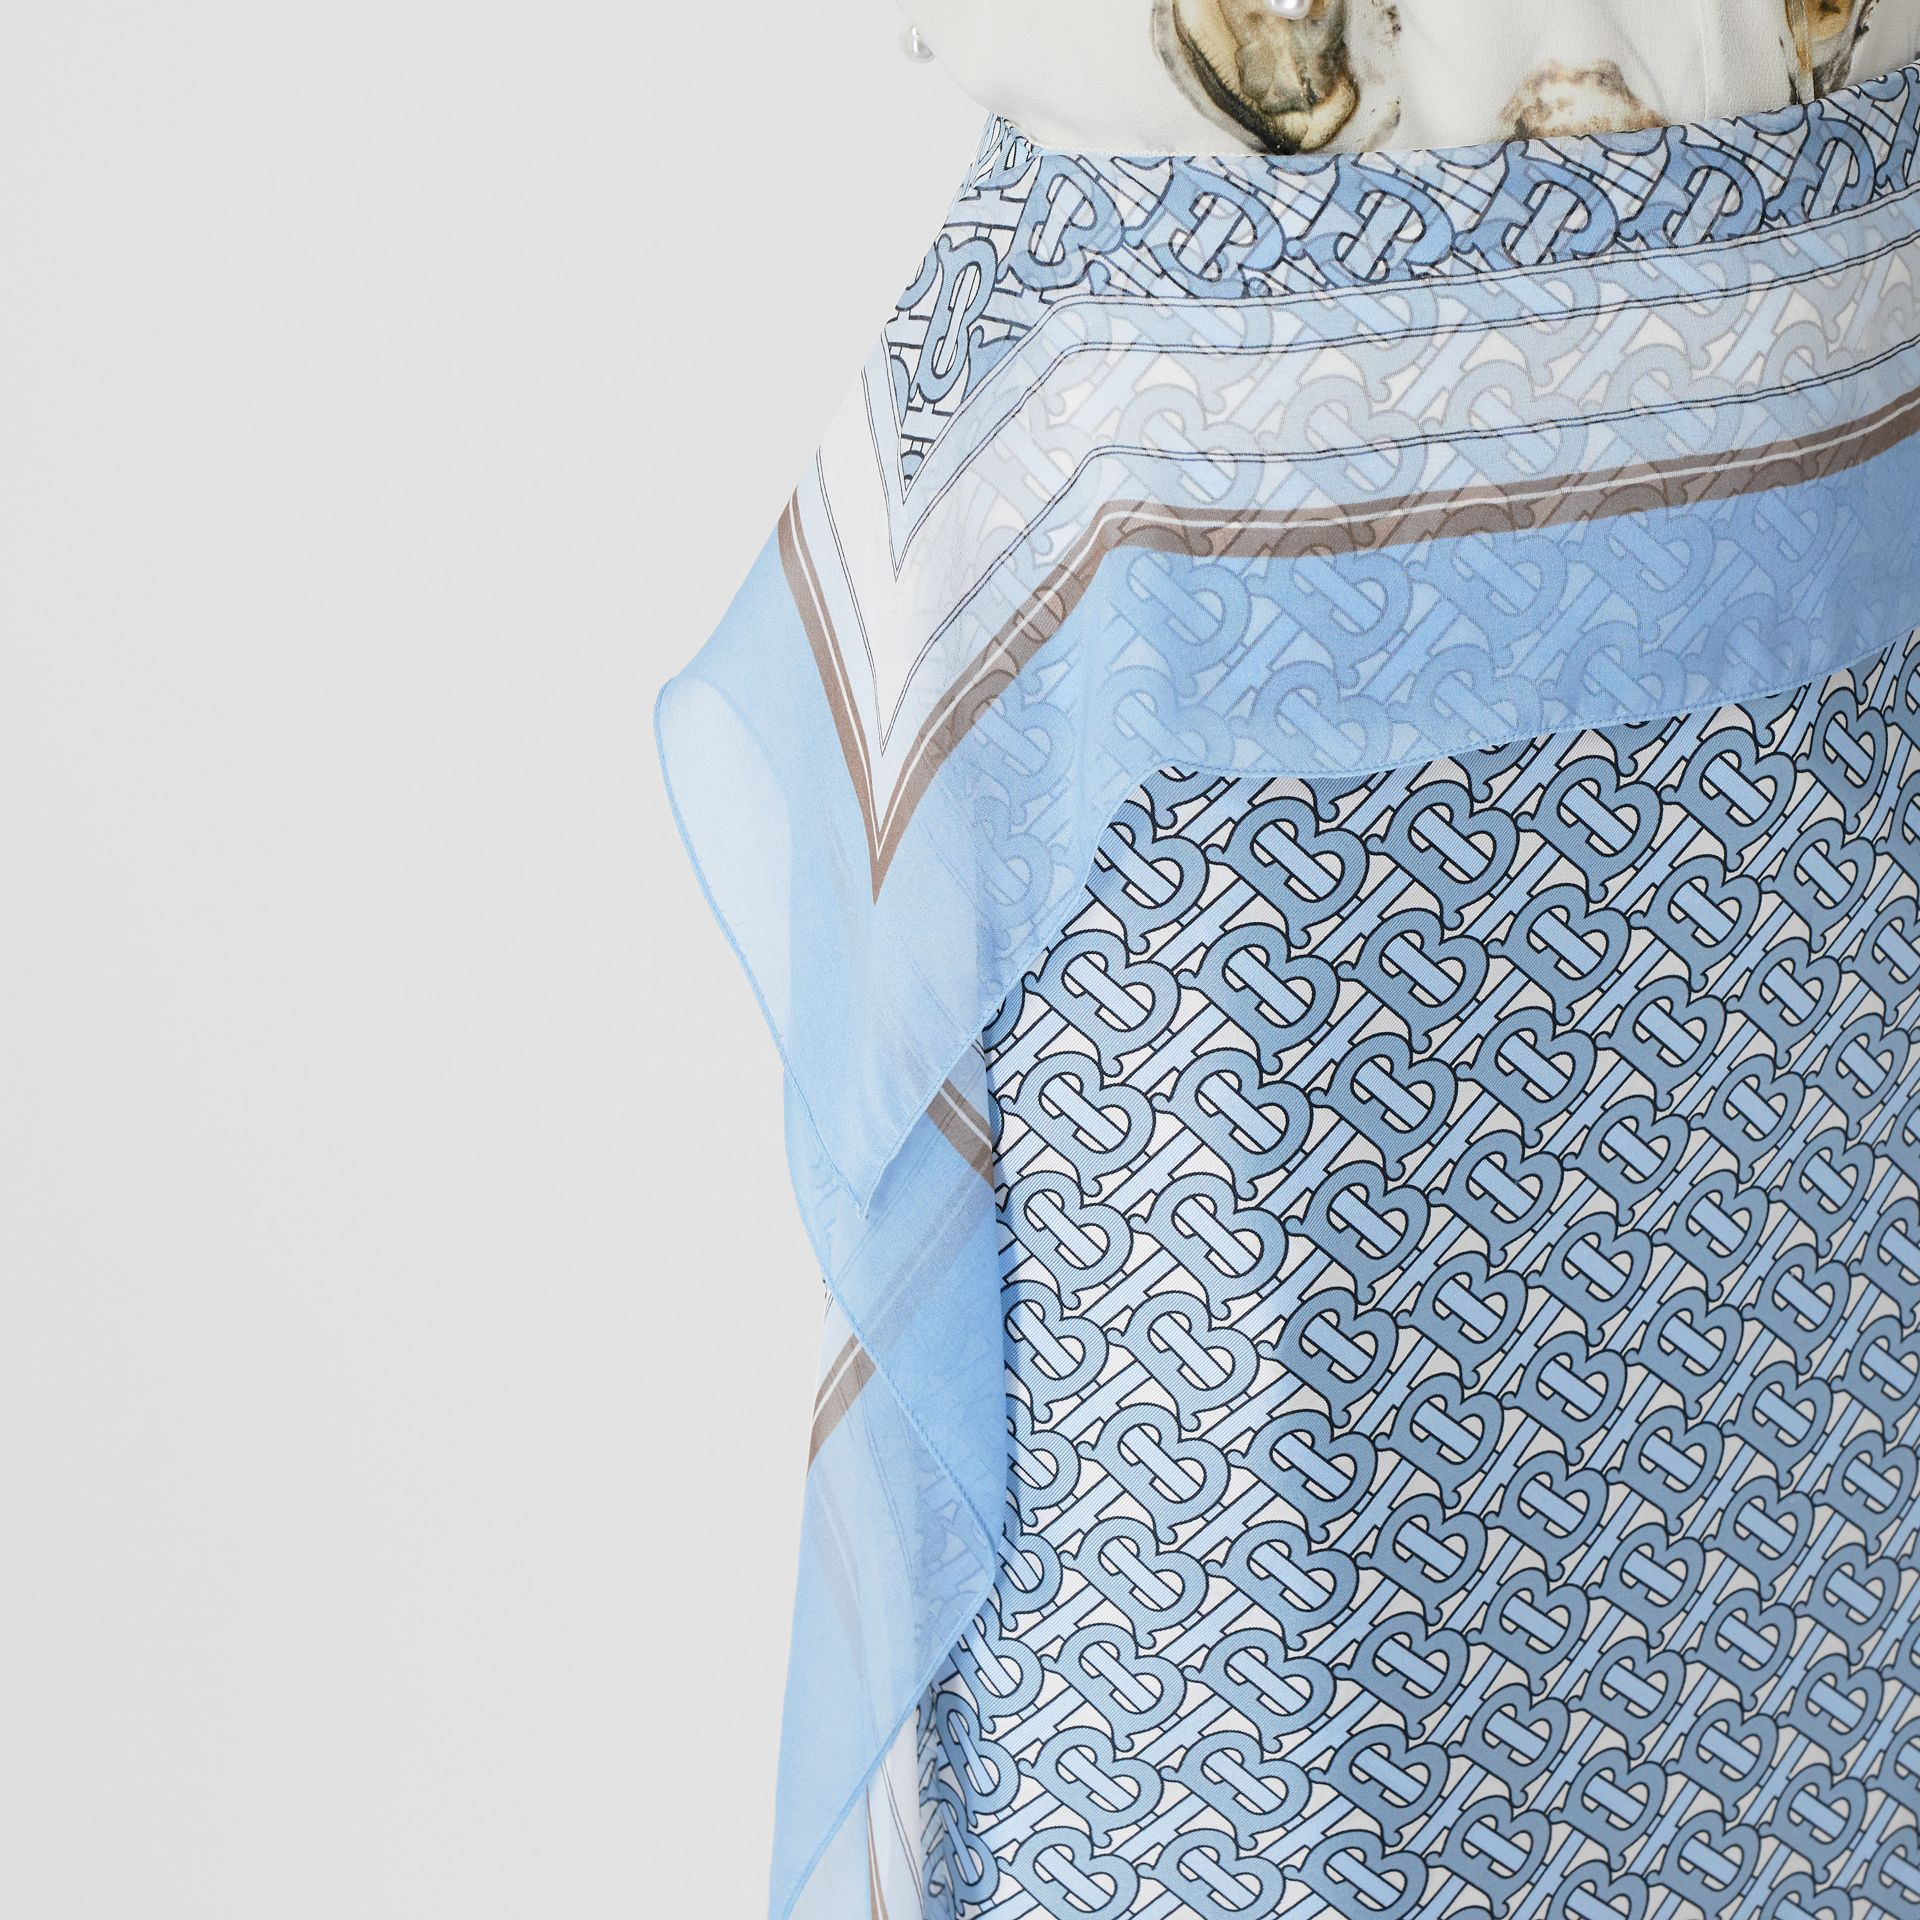 Scarf Detail Monogram Print Silk Pencil Skirt in Baby Blue - Women | Burberry - gallery image 6